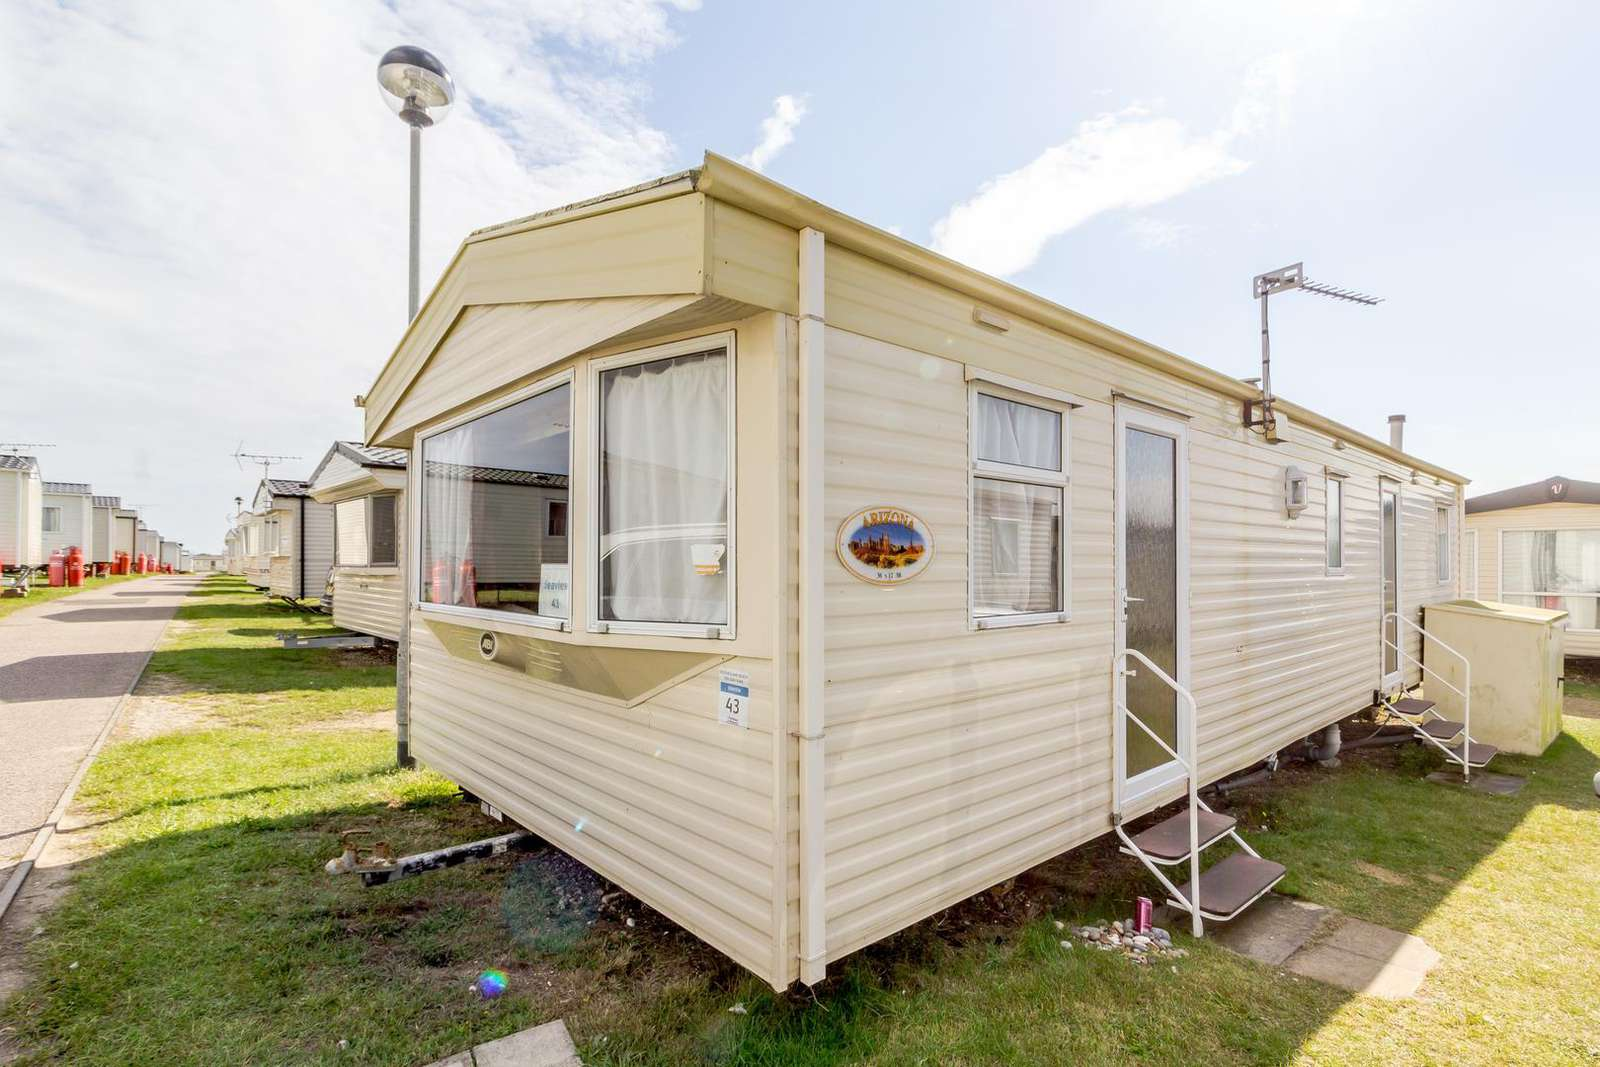 90043SV – Sea View area, 3 bed, 8 berth caravan close to the beach. Sapphire rated. - property